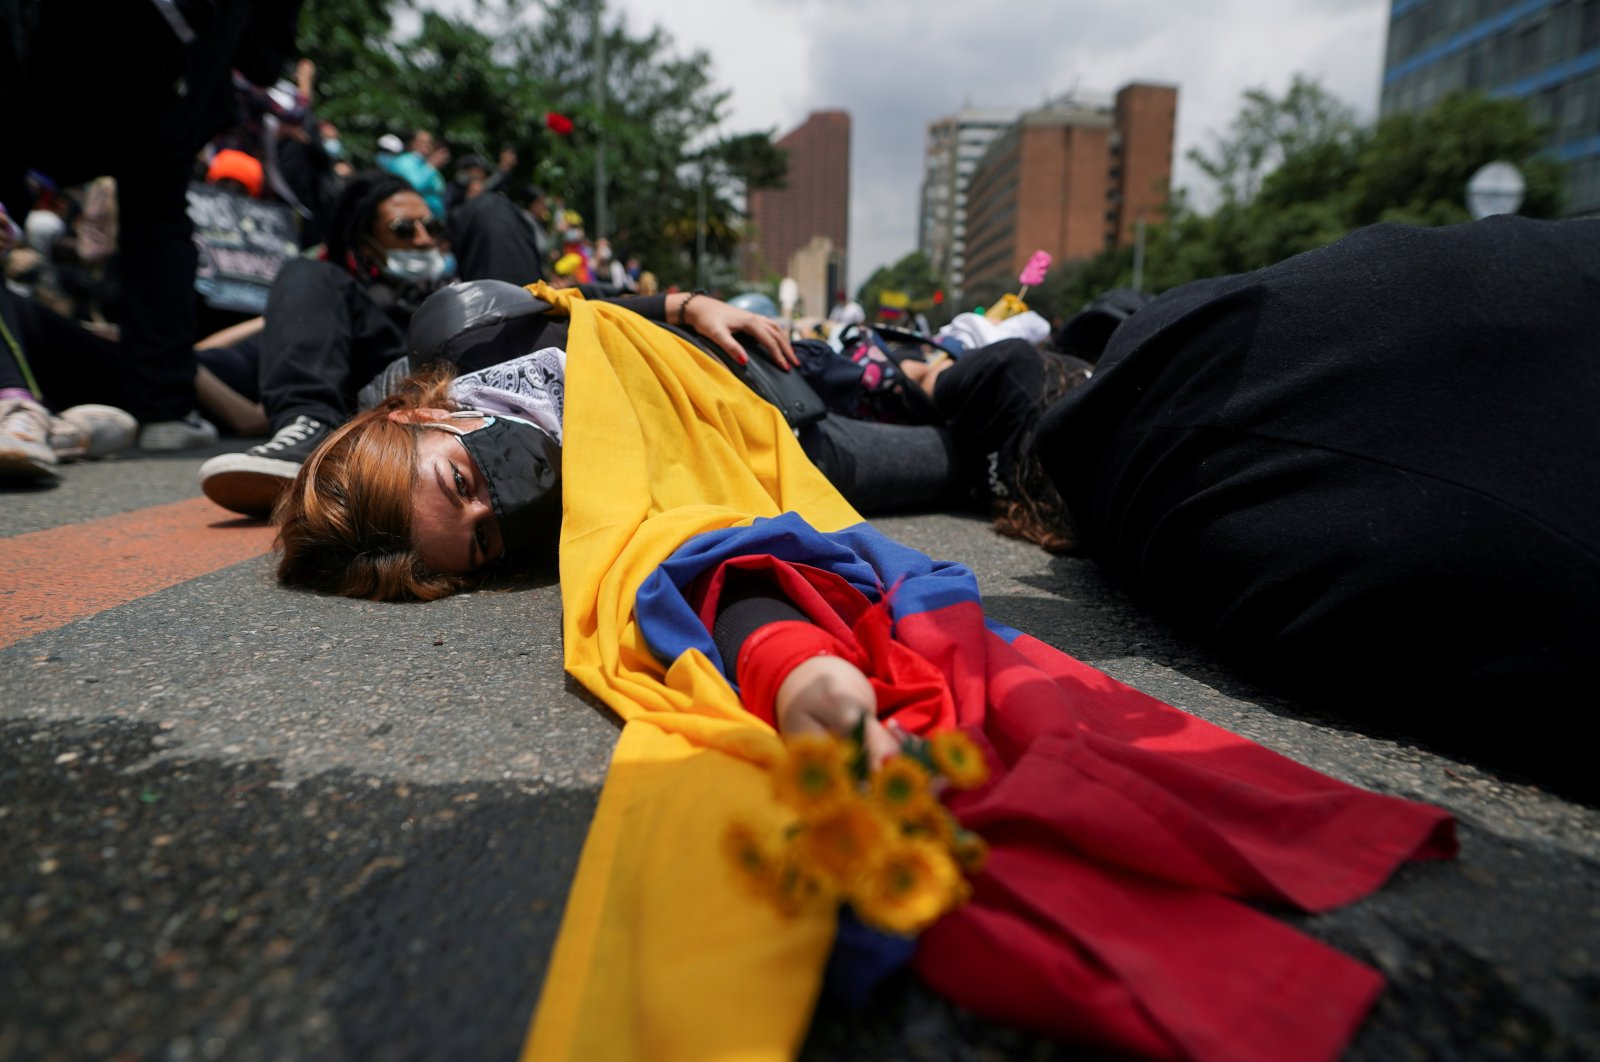 Demonstrators participate in a protest against poverty and police violence in Bogota, Colombia, May 5, 2021. (Reuters Photo)